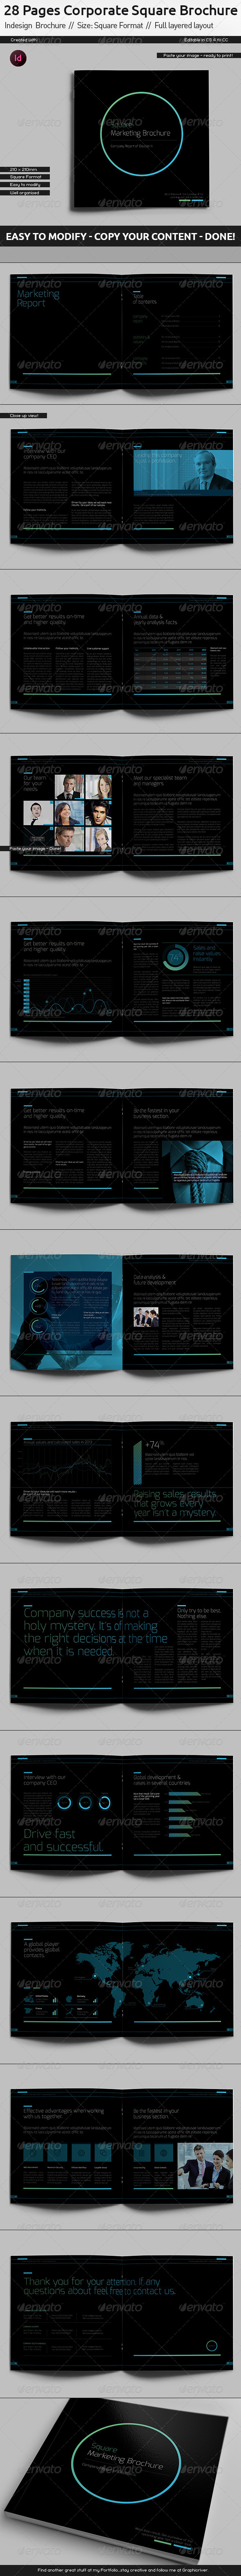 GraphicRiver Black Company Brochure Square Format 5901758